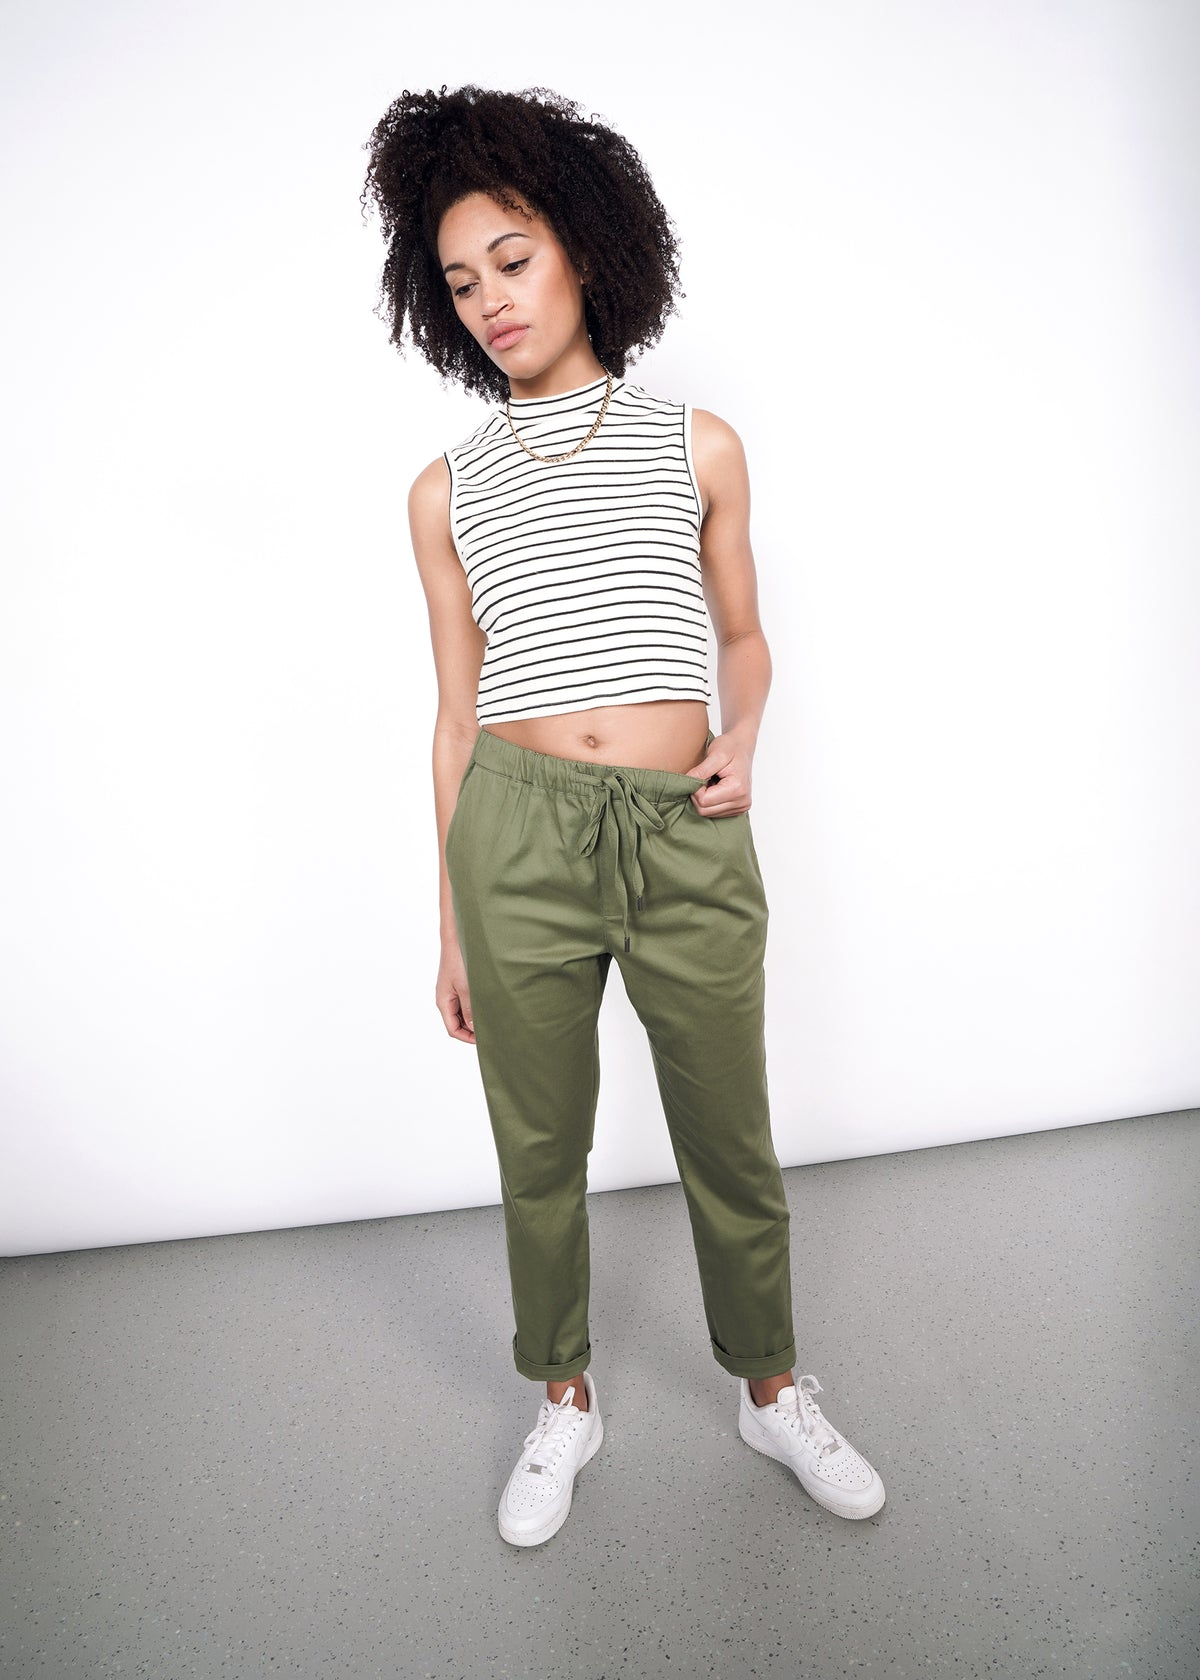 Model with curly hair wearing olive drawstring pants, white sneakers, and white tank top with black strips.